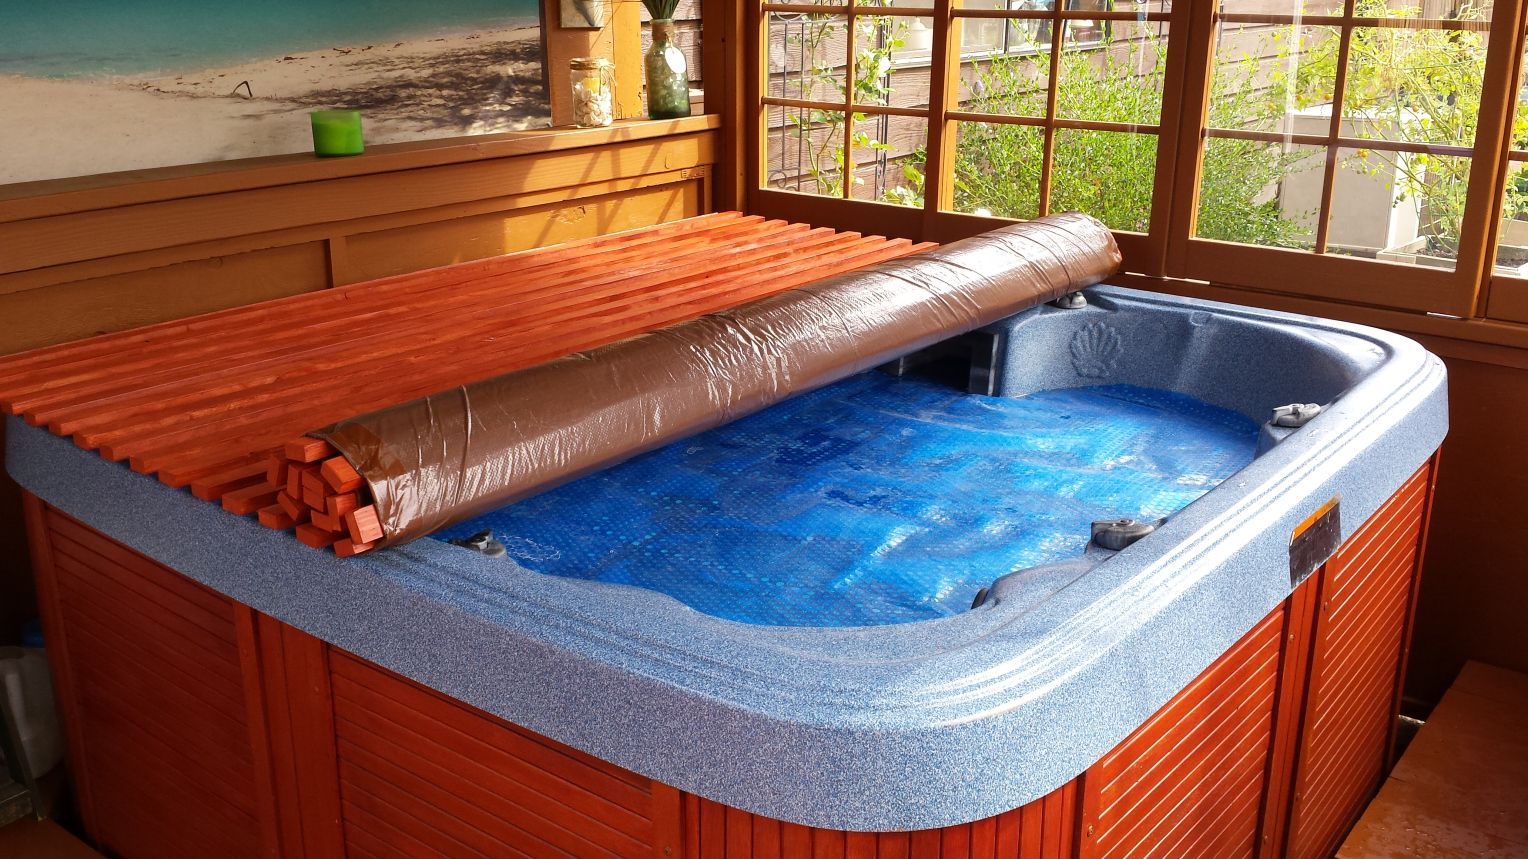 DIY HOT TUB COVER | Tub cover, Tubs and Spa